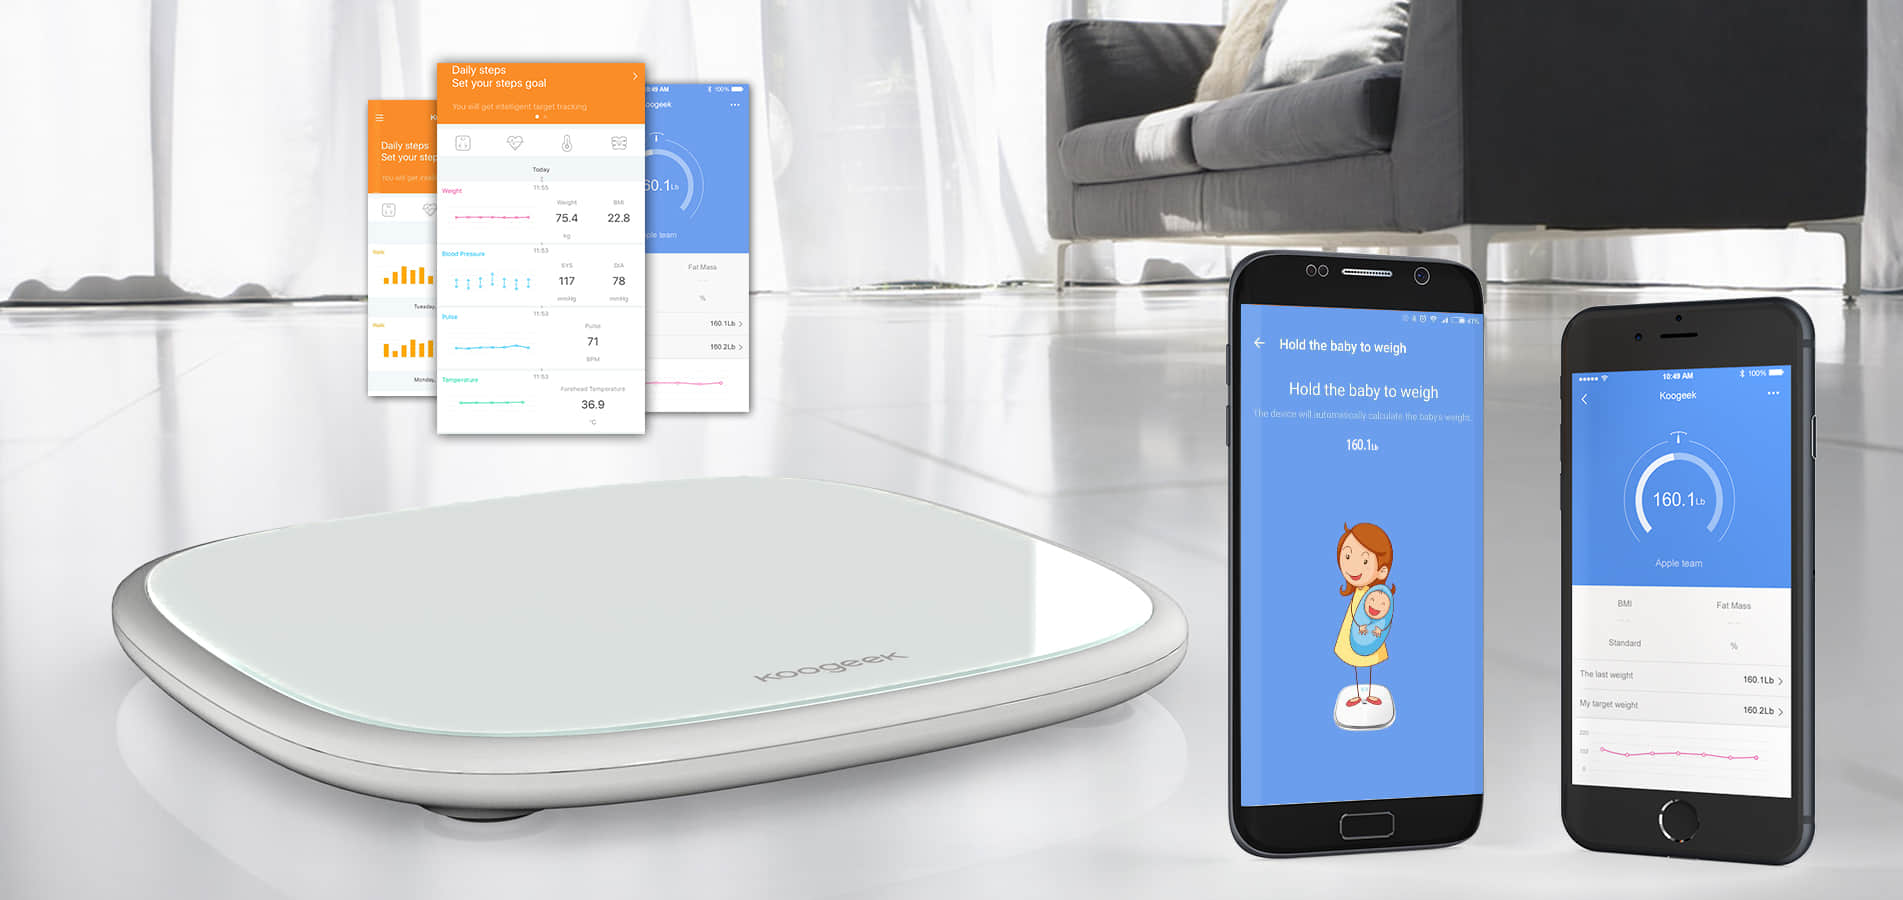 Why is Koogeek Weight Scale the best? 1